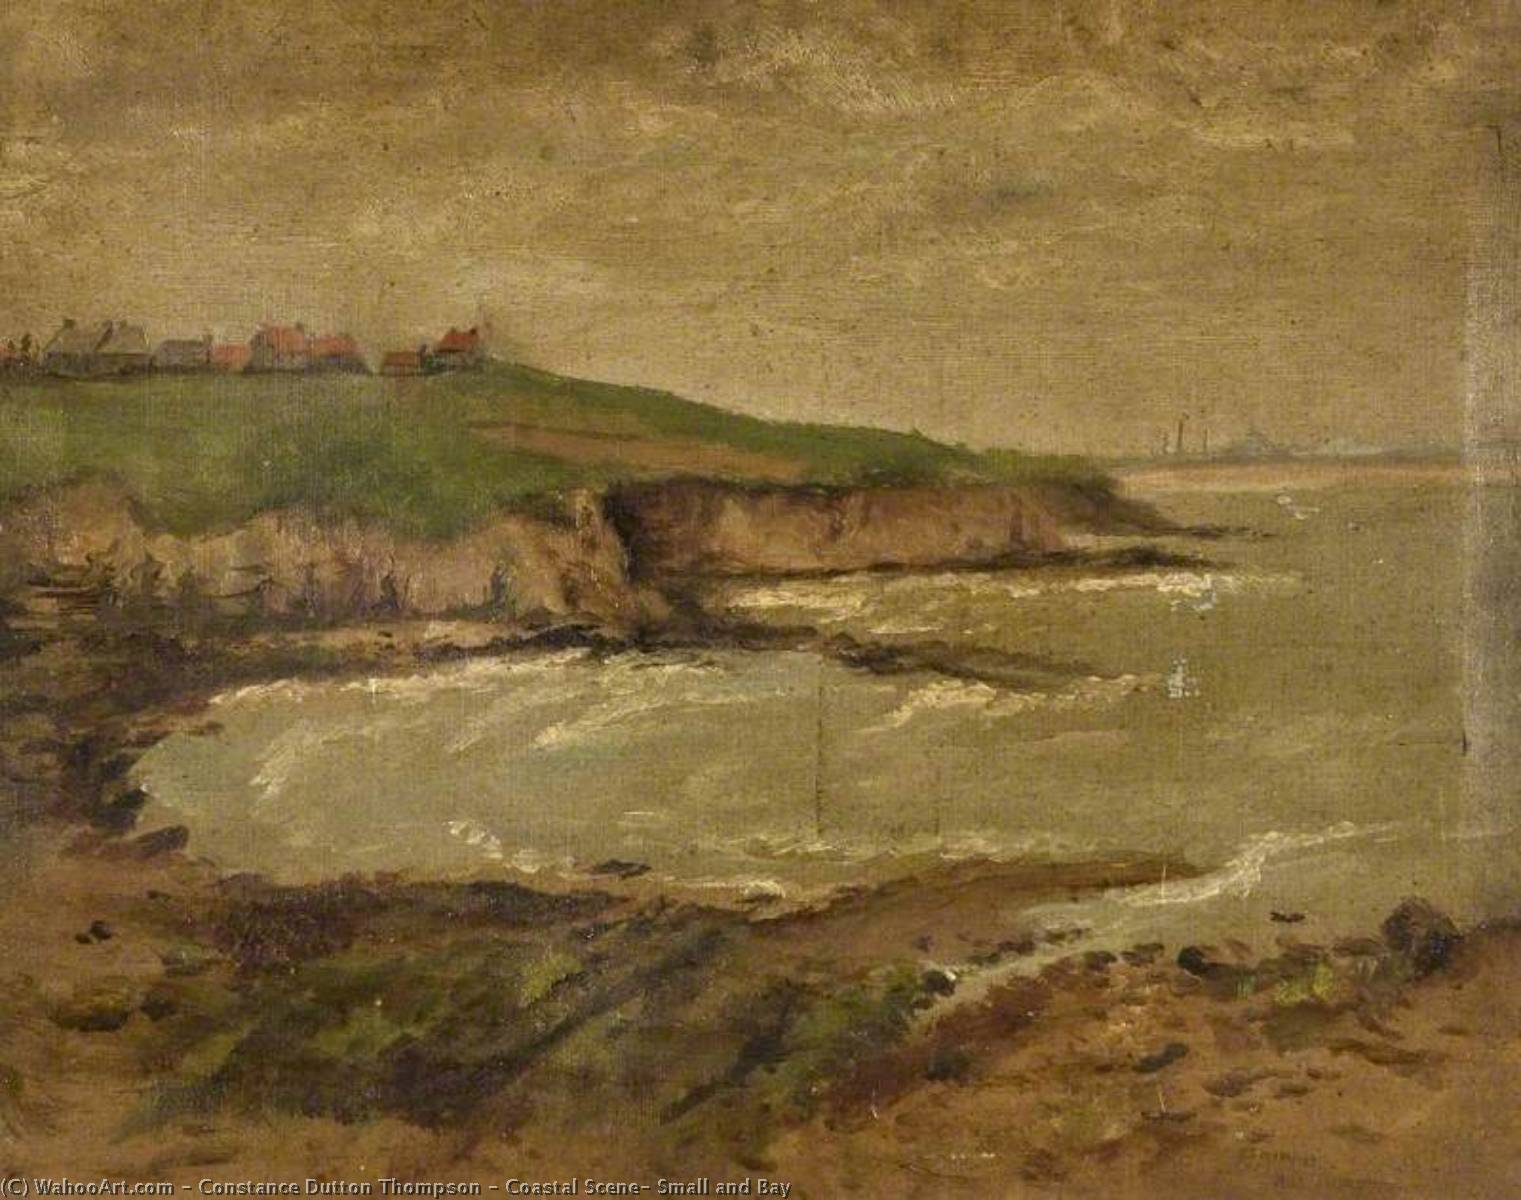 Coastal Scene, Small and Bay, 1908 by Constance Dutton Thompson | Art Reproductions Constance Dutton Thompson | WahooArt.com